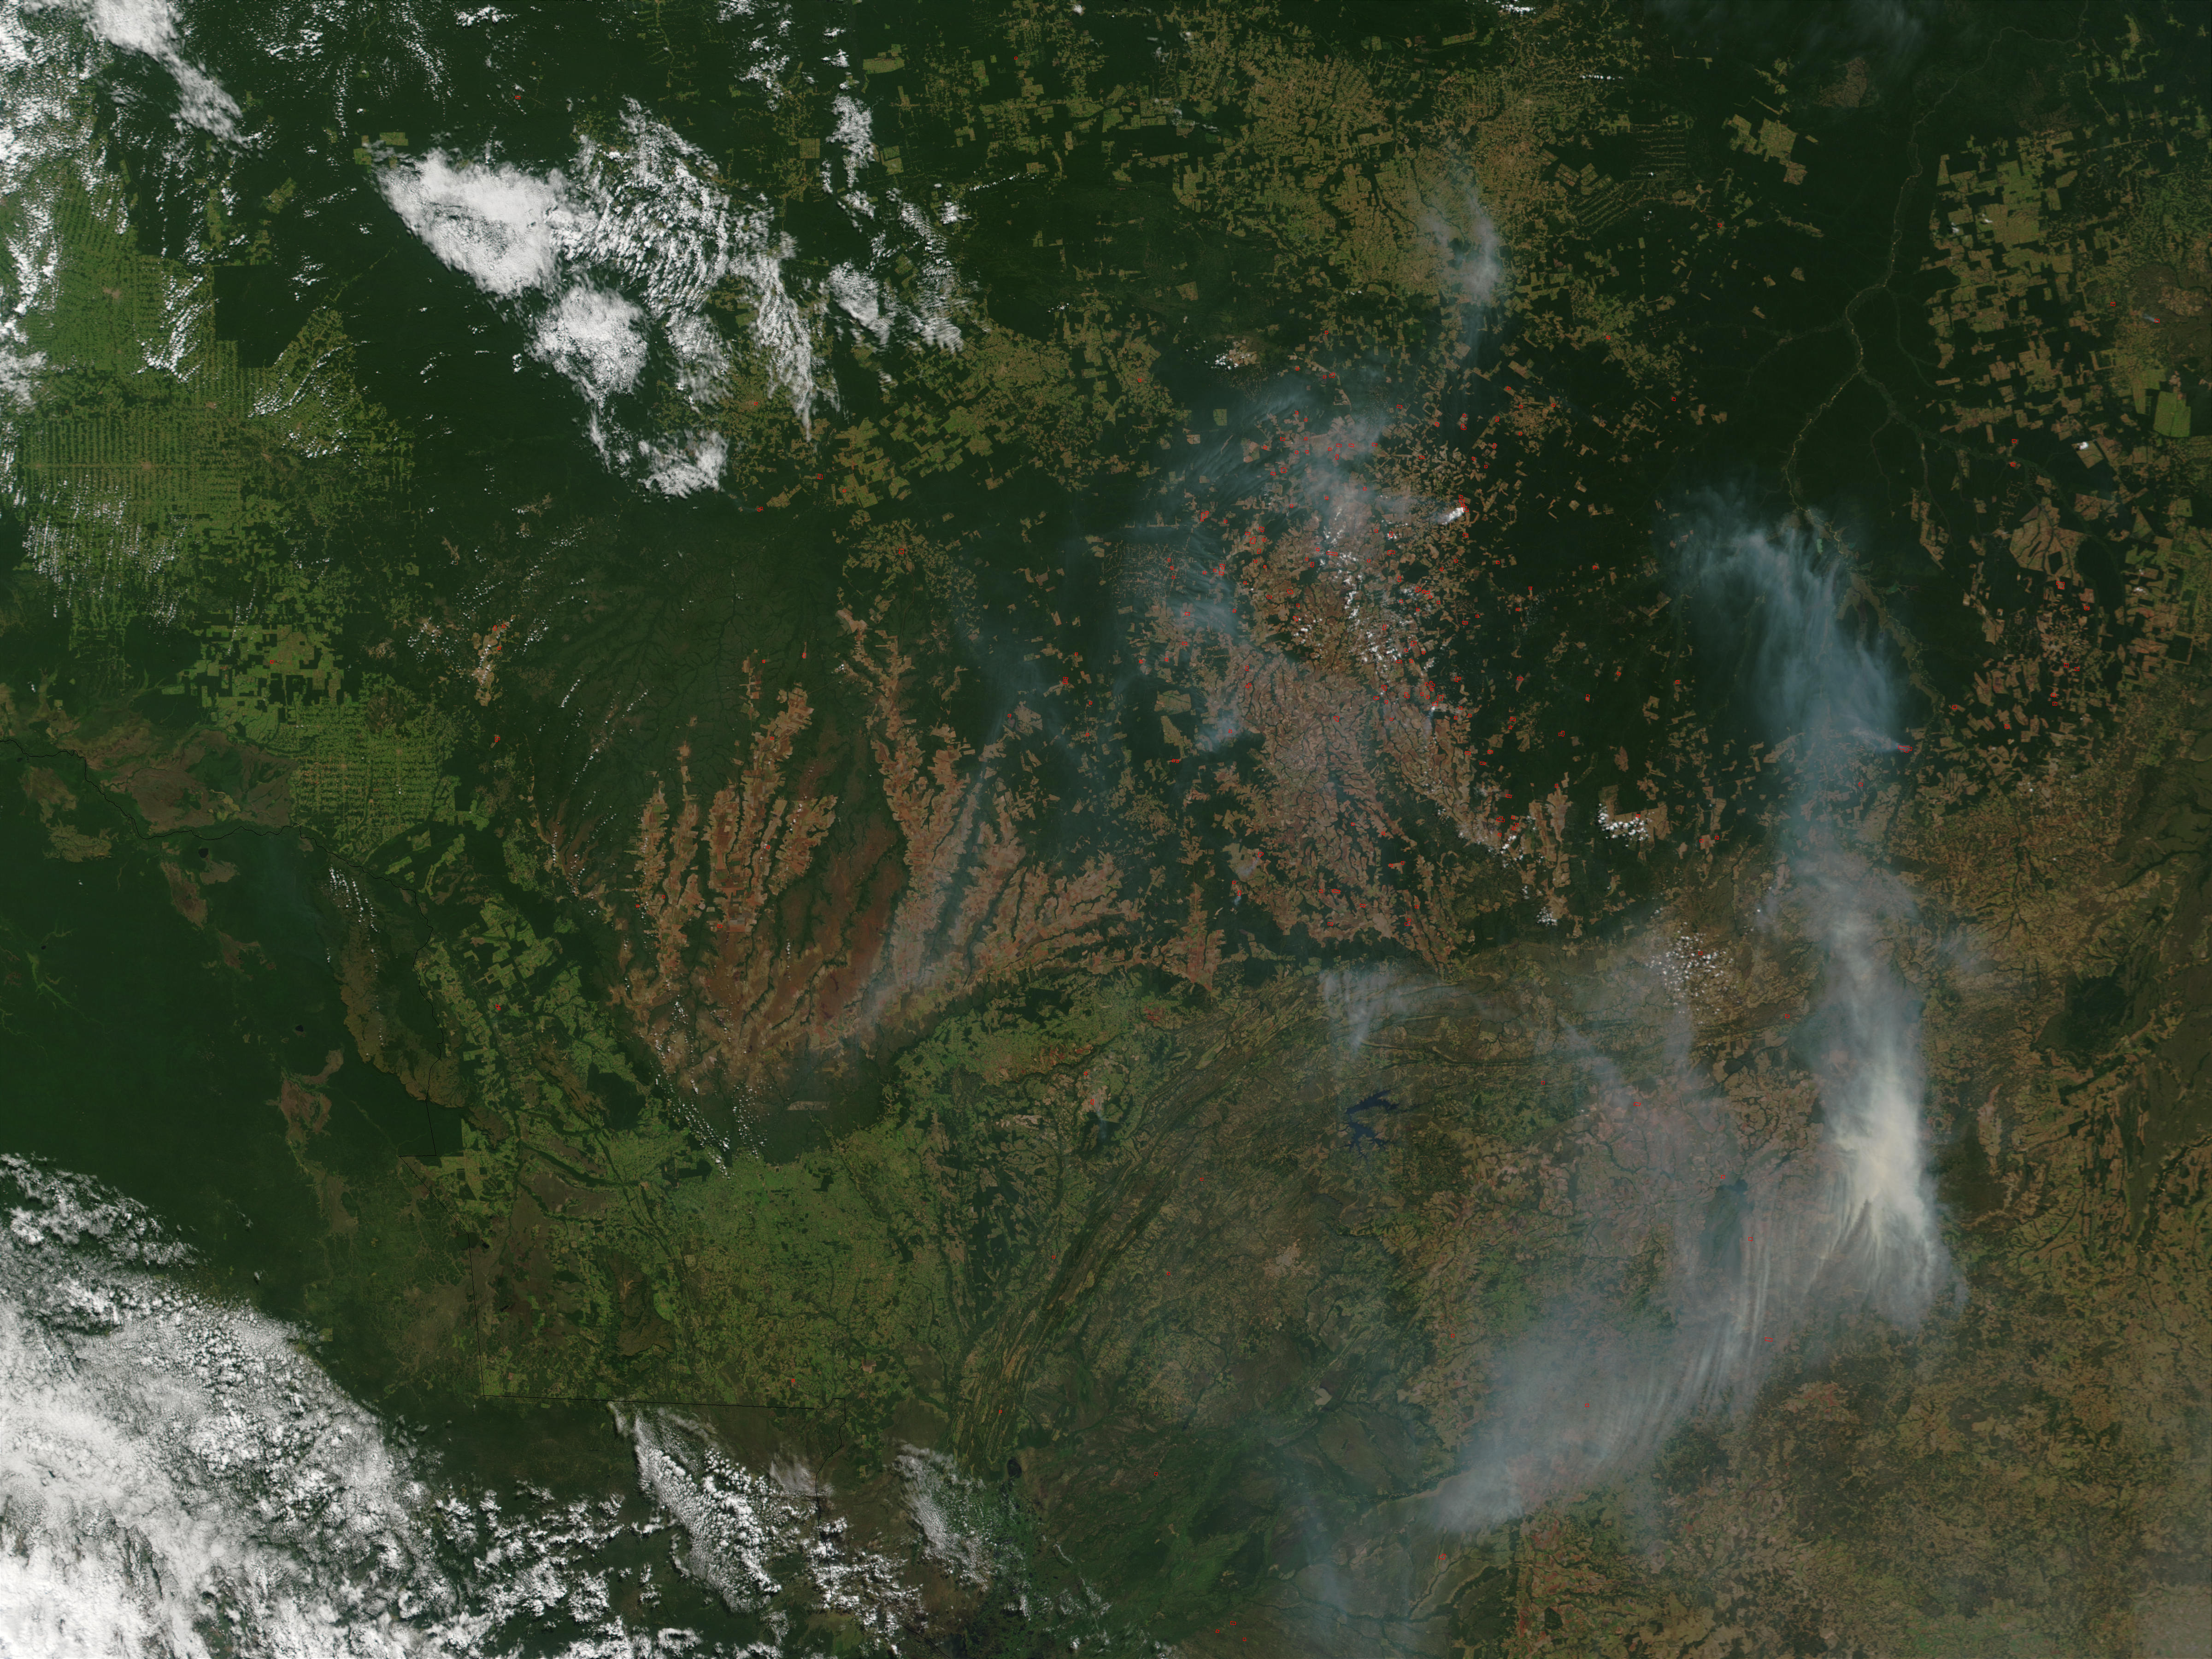 Fires and smoke in Mato Grosso, Brazil